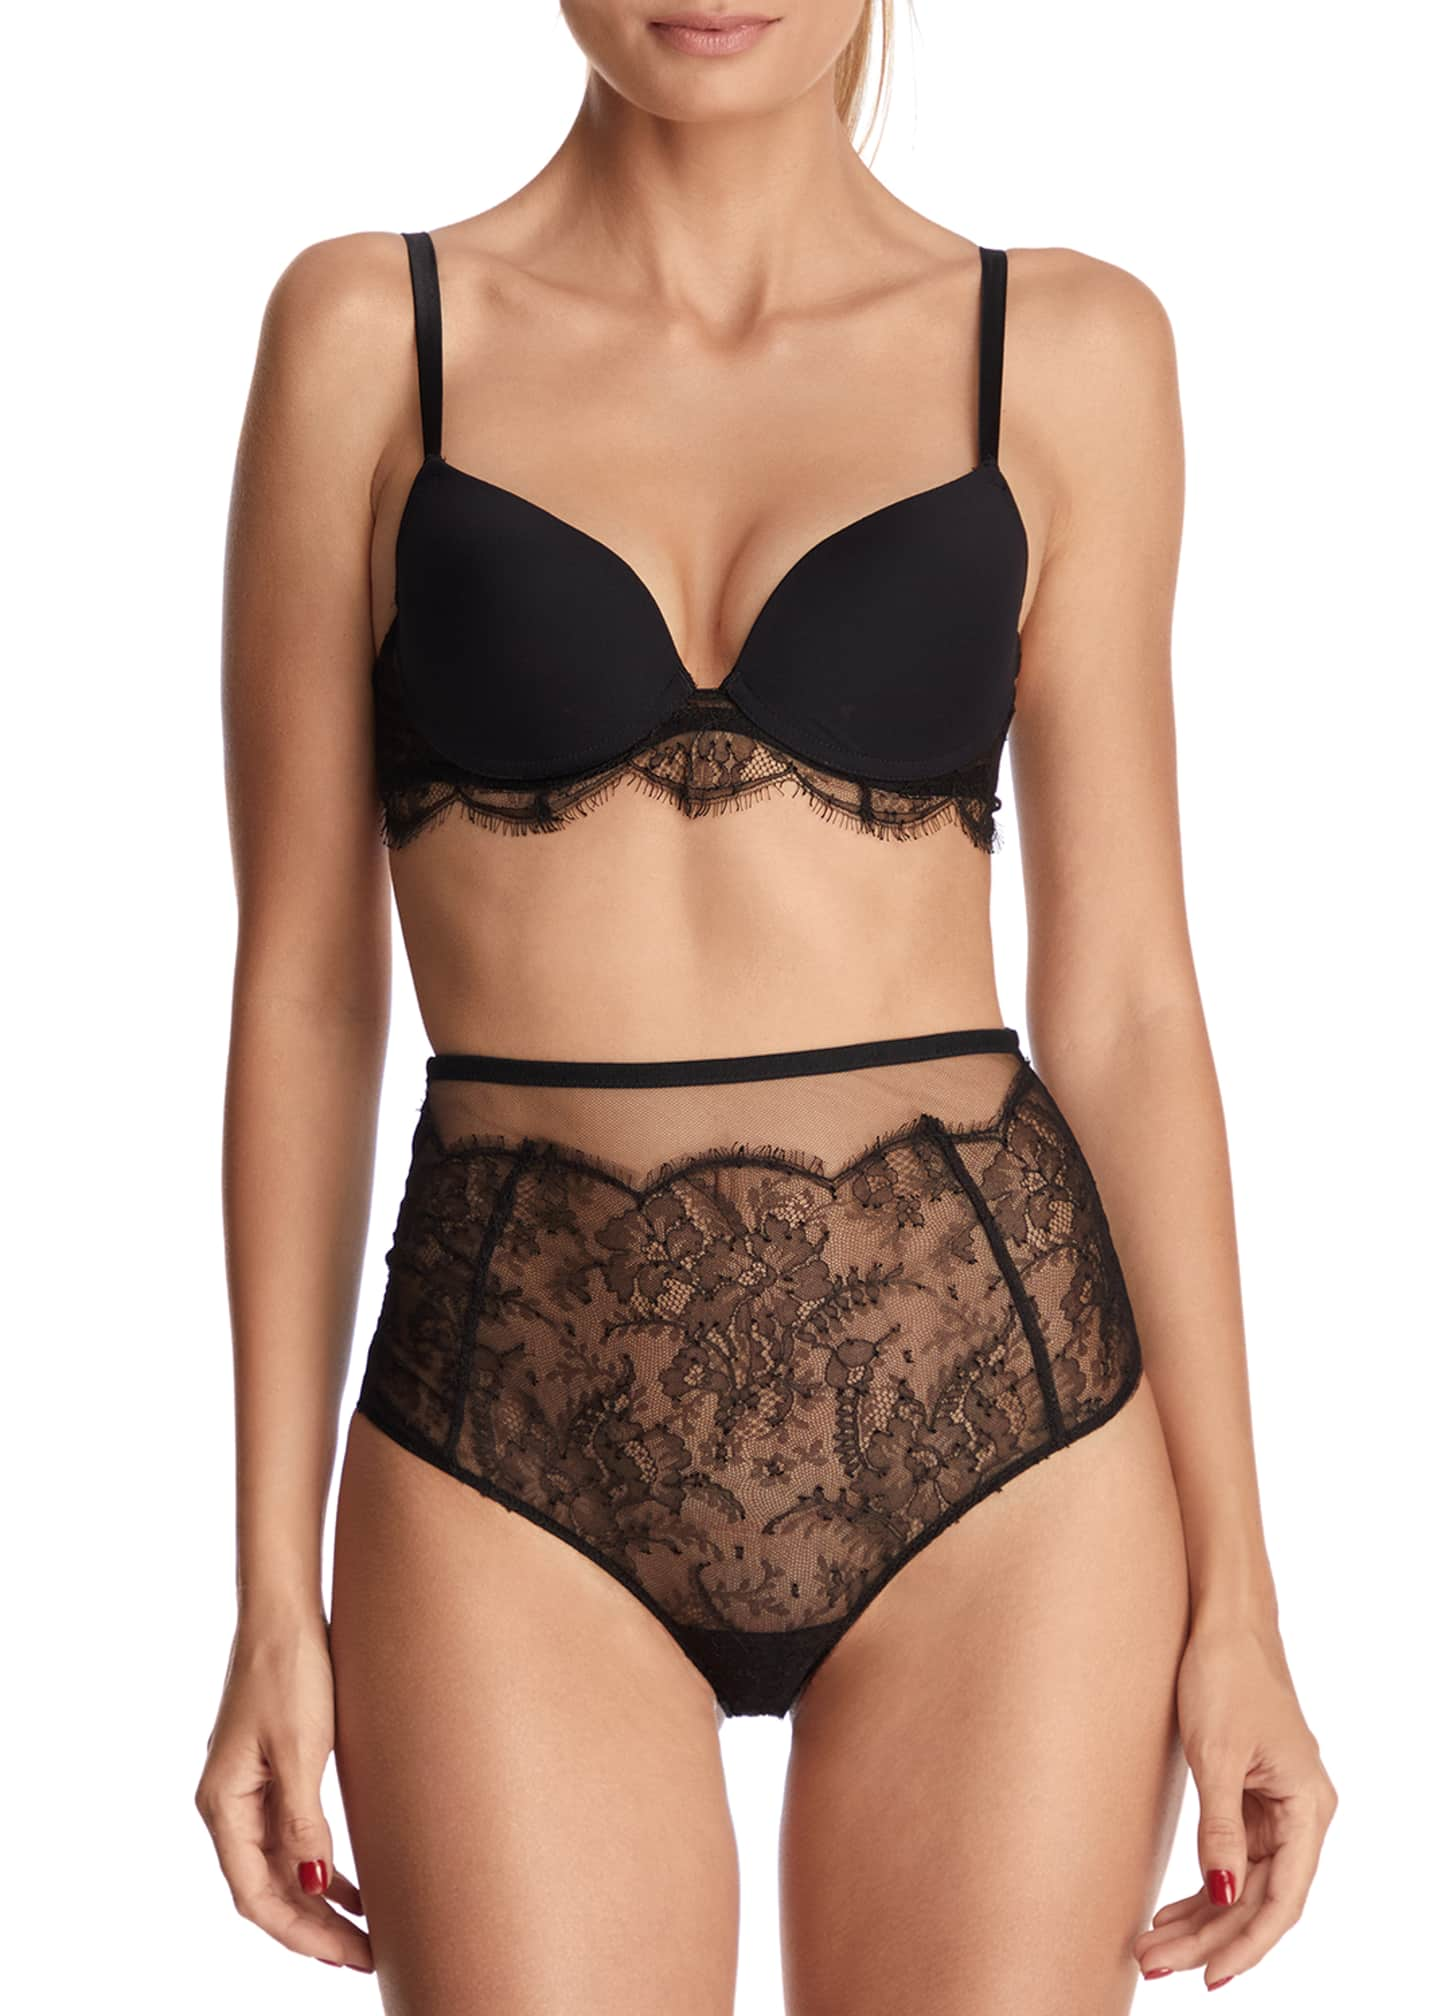 Far From Heaven Lace High-Waist Briefs